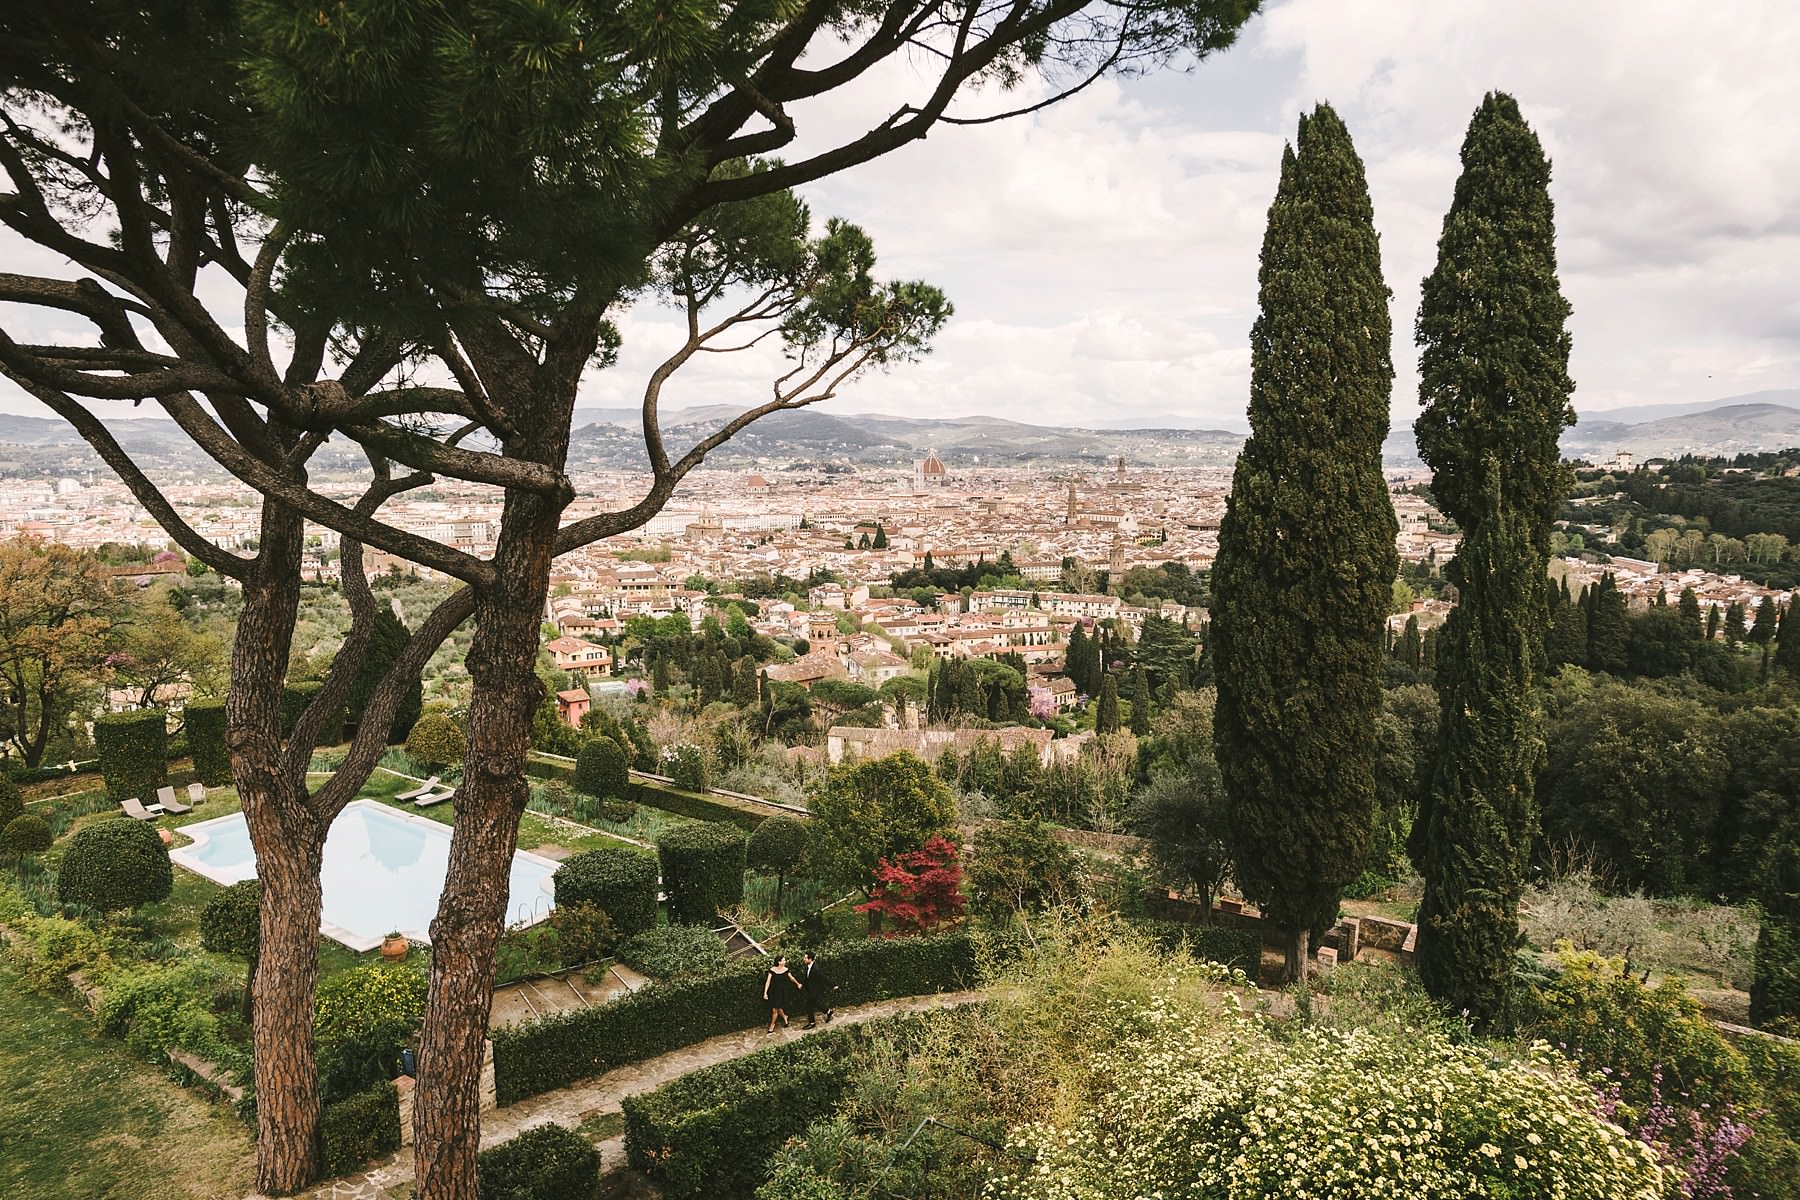 Incredible engagement pre-wedding photo session in Tuscany. Bellosguardo in Florence was the first set. The historical residence is built on a gentle hill that overlooks the city a perfect spot for gorgeous photos